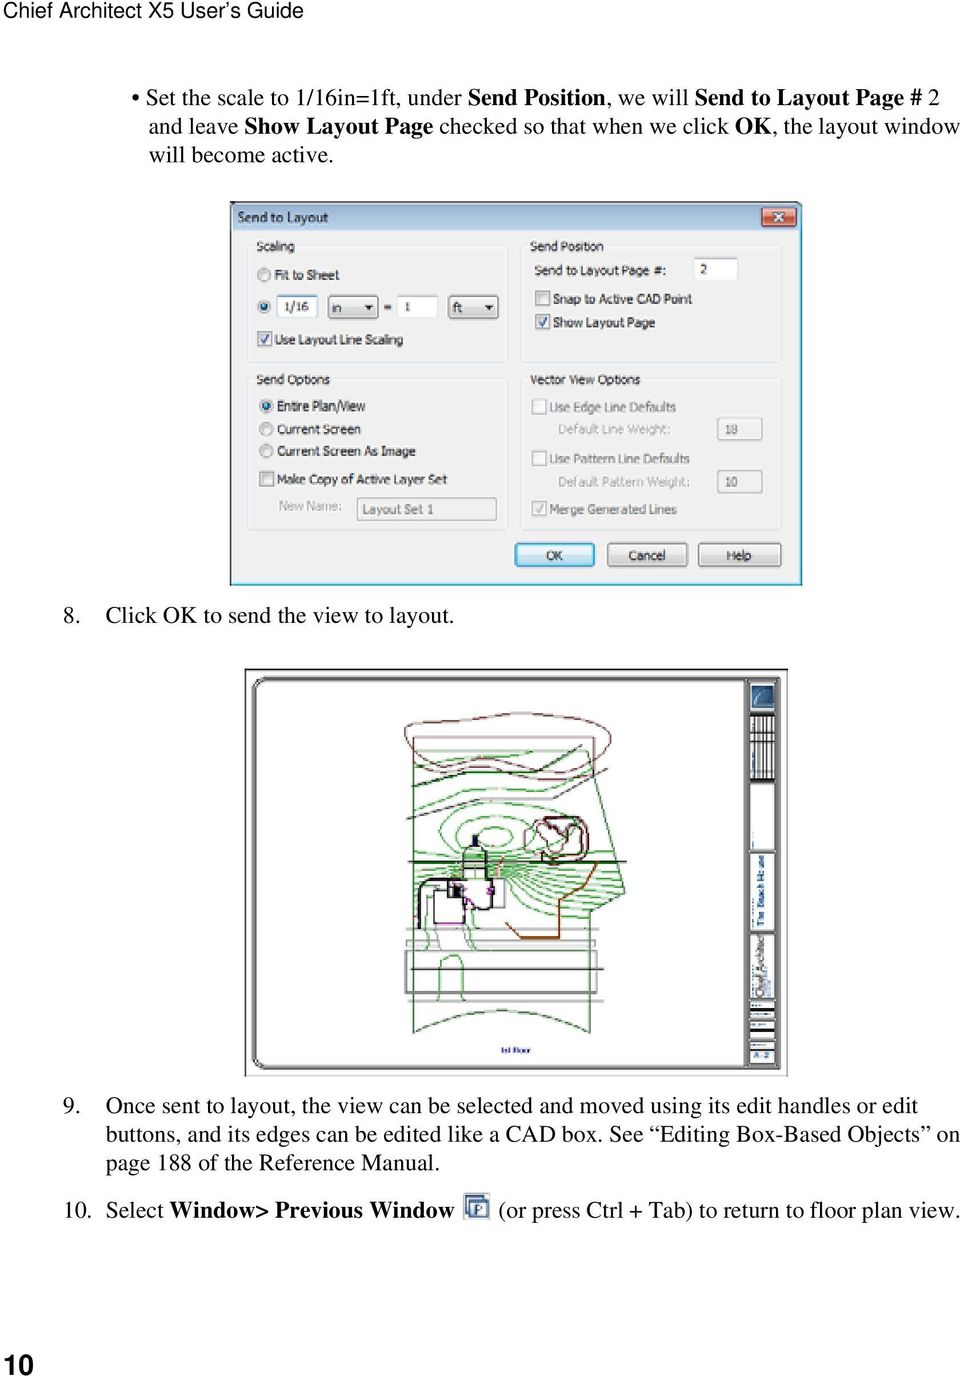 Once sent to layout, the view can be selected and moved using its edit handles or edit buttons, and its edges can be edited like a CAD